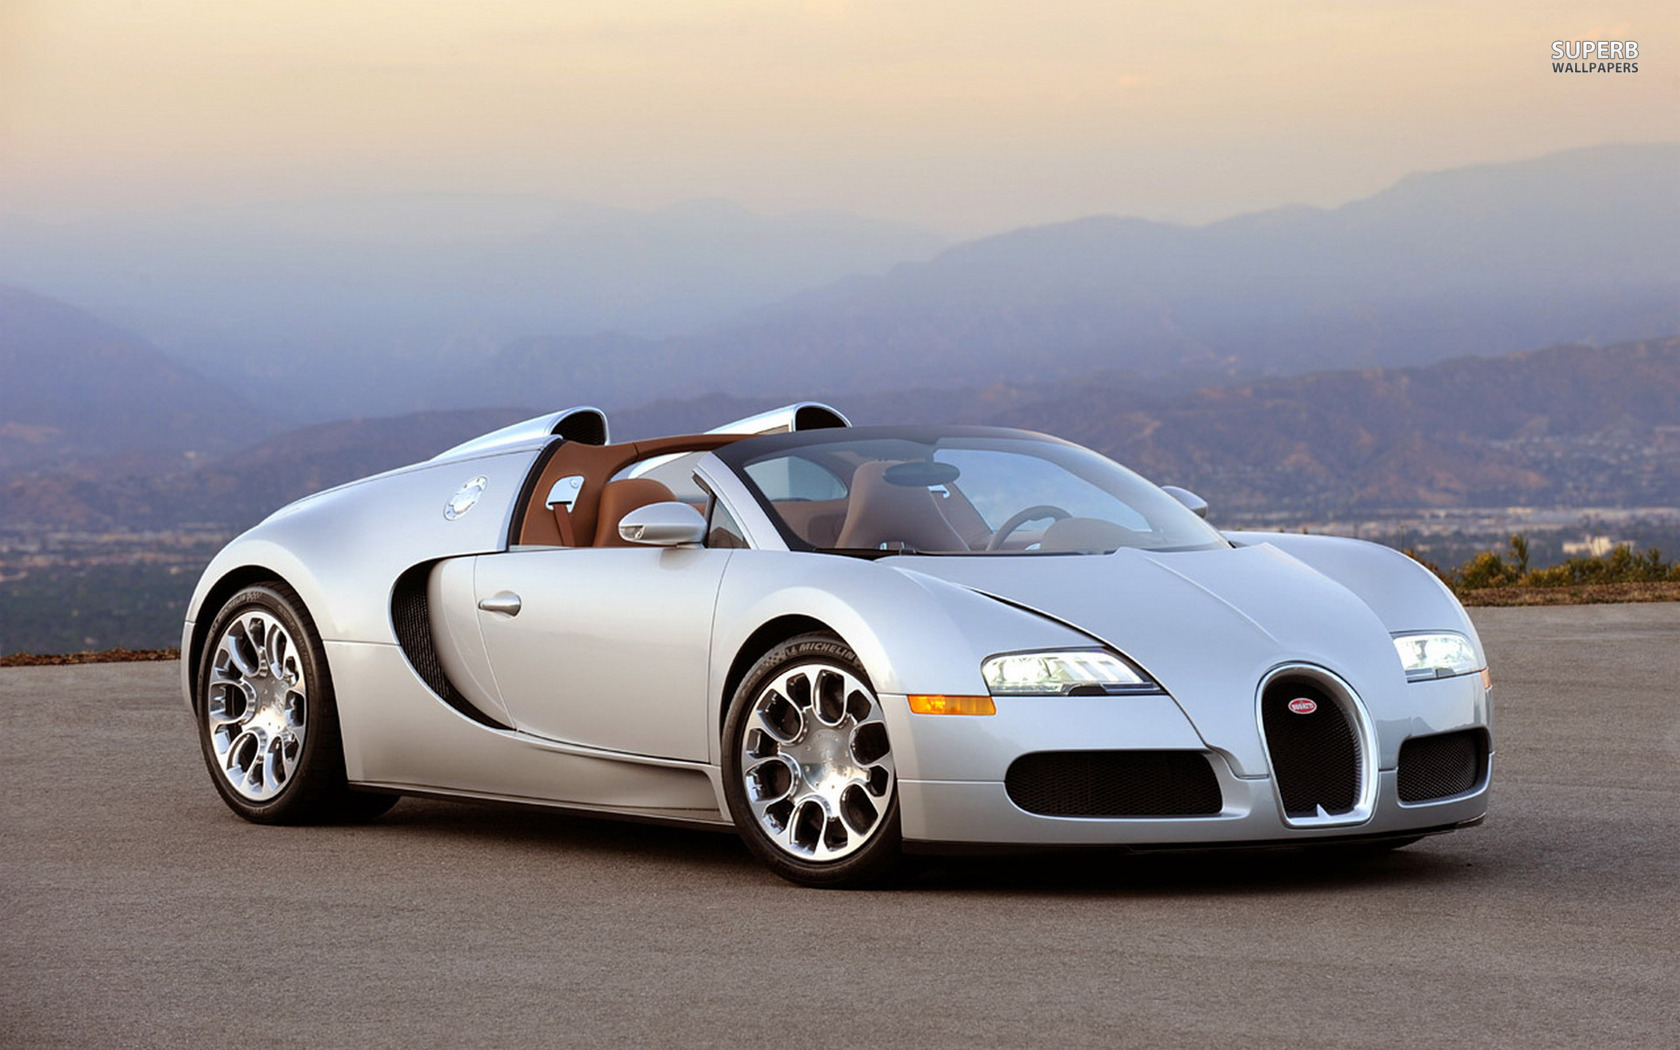 2019 Bugatti EB 164 Veyron photo - 6